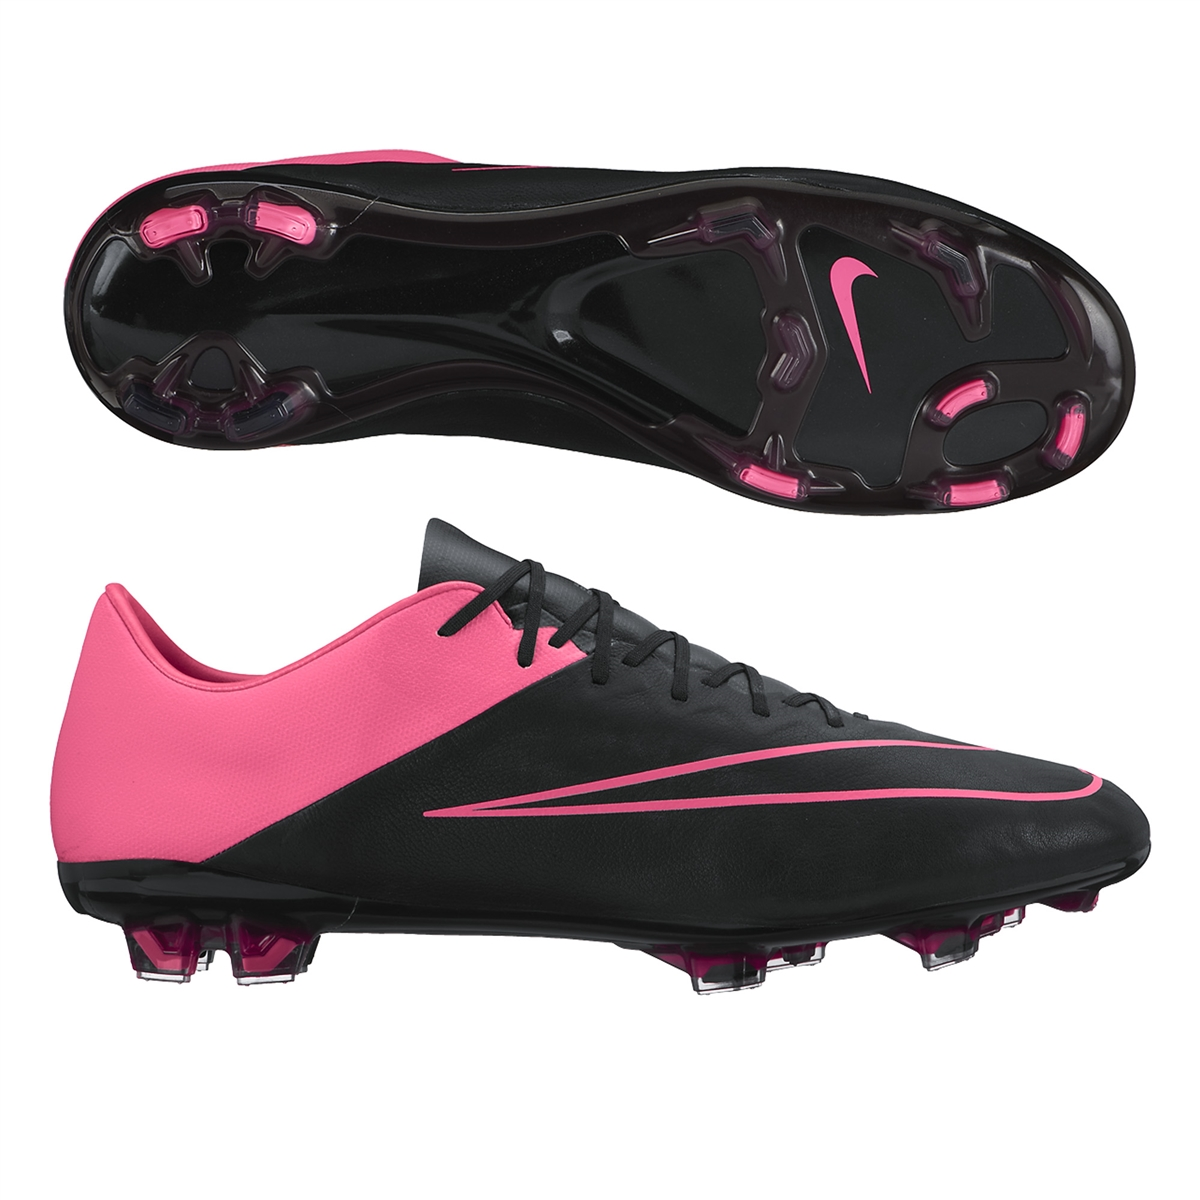 c32c3f07418 Mercurial Vapor X Tech Craft (Leather) FG Soccer Cleats (Black Hyper ...